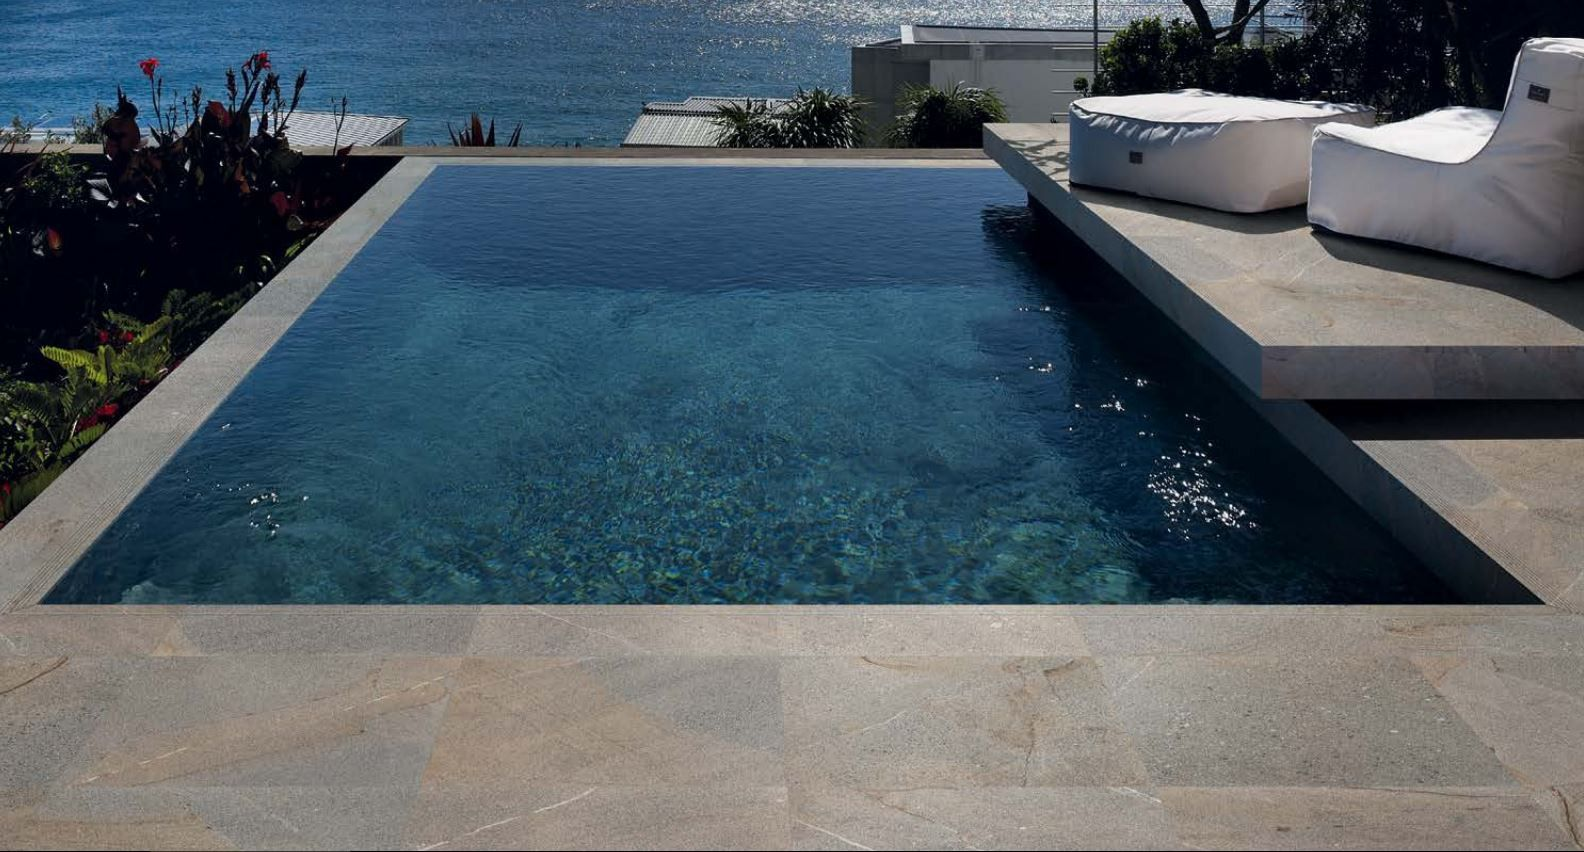 Keramik Fliesen Für Pool Ergon Cornerstone Granite Stone 20mm 60x60 Cm X604f7